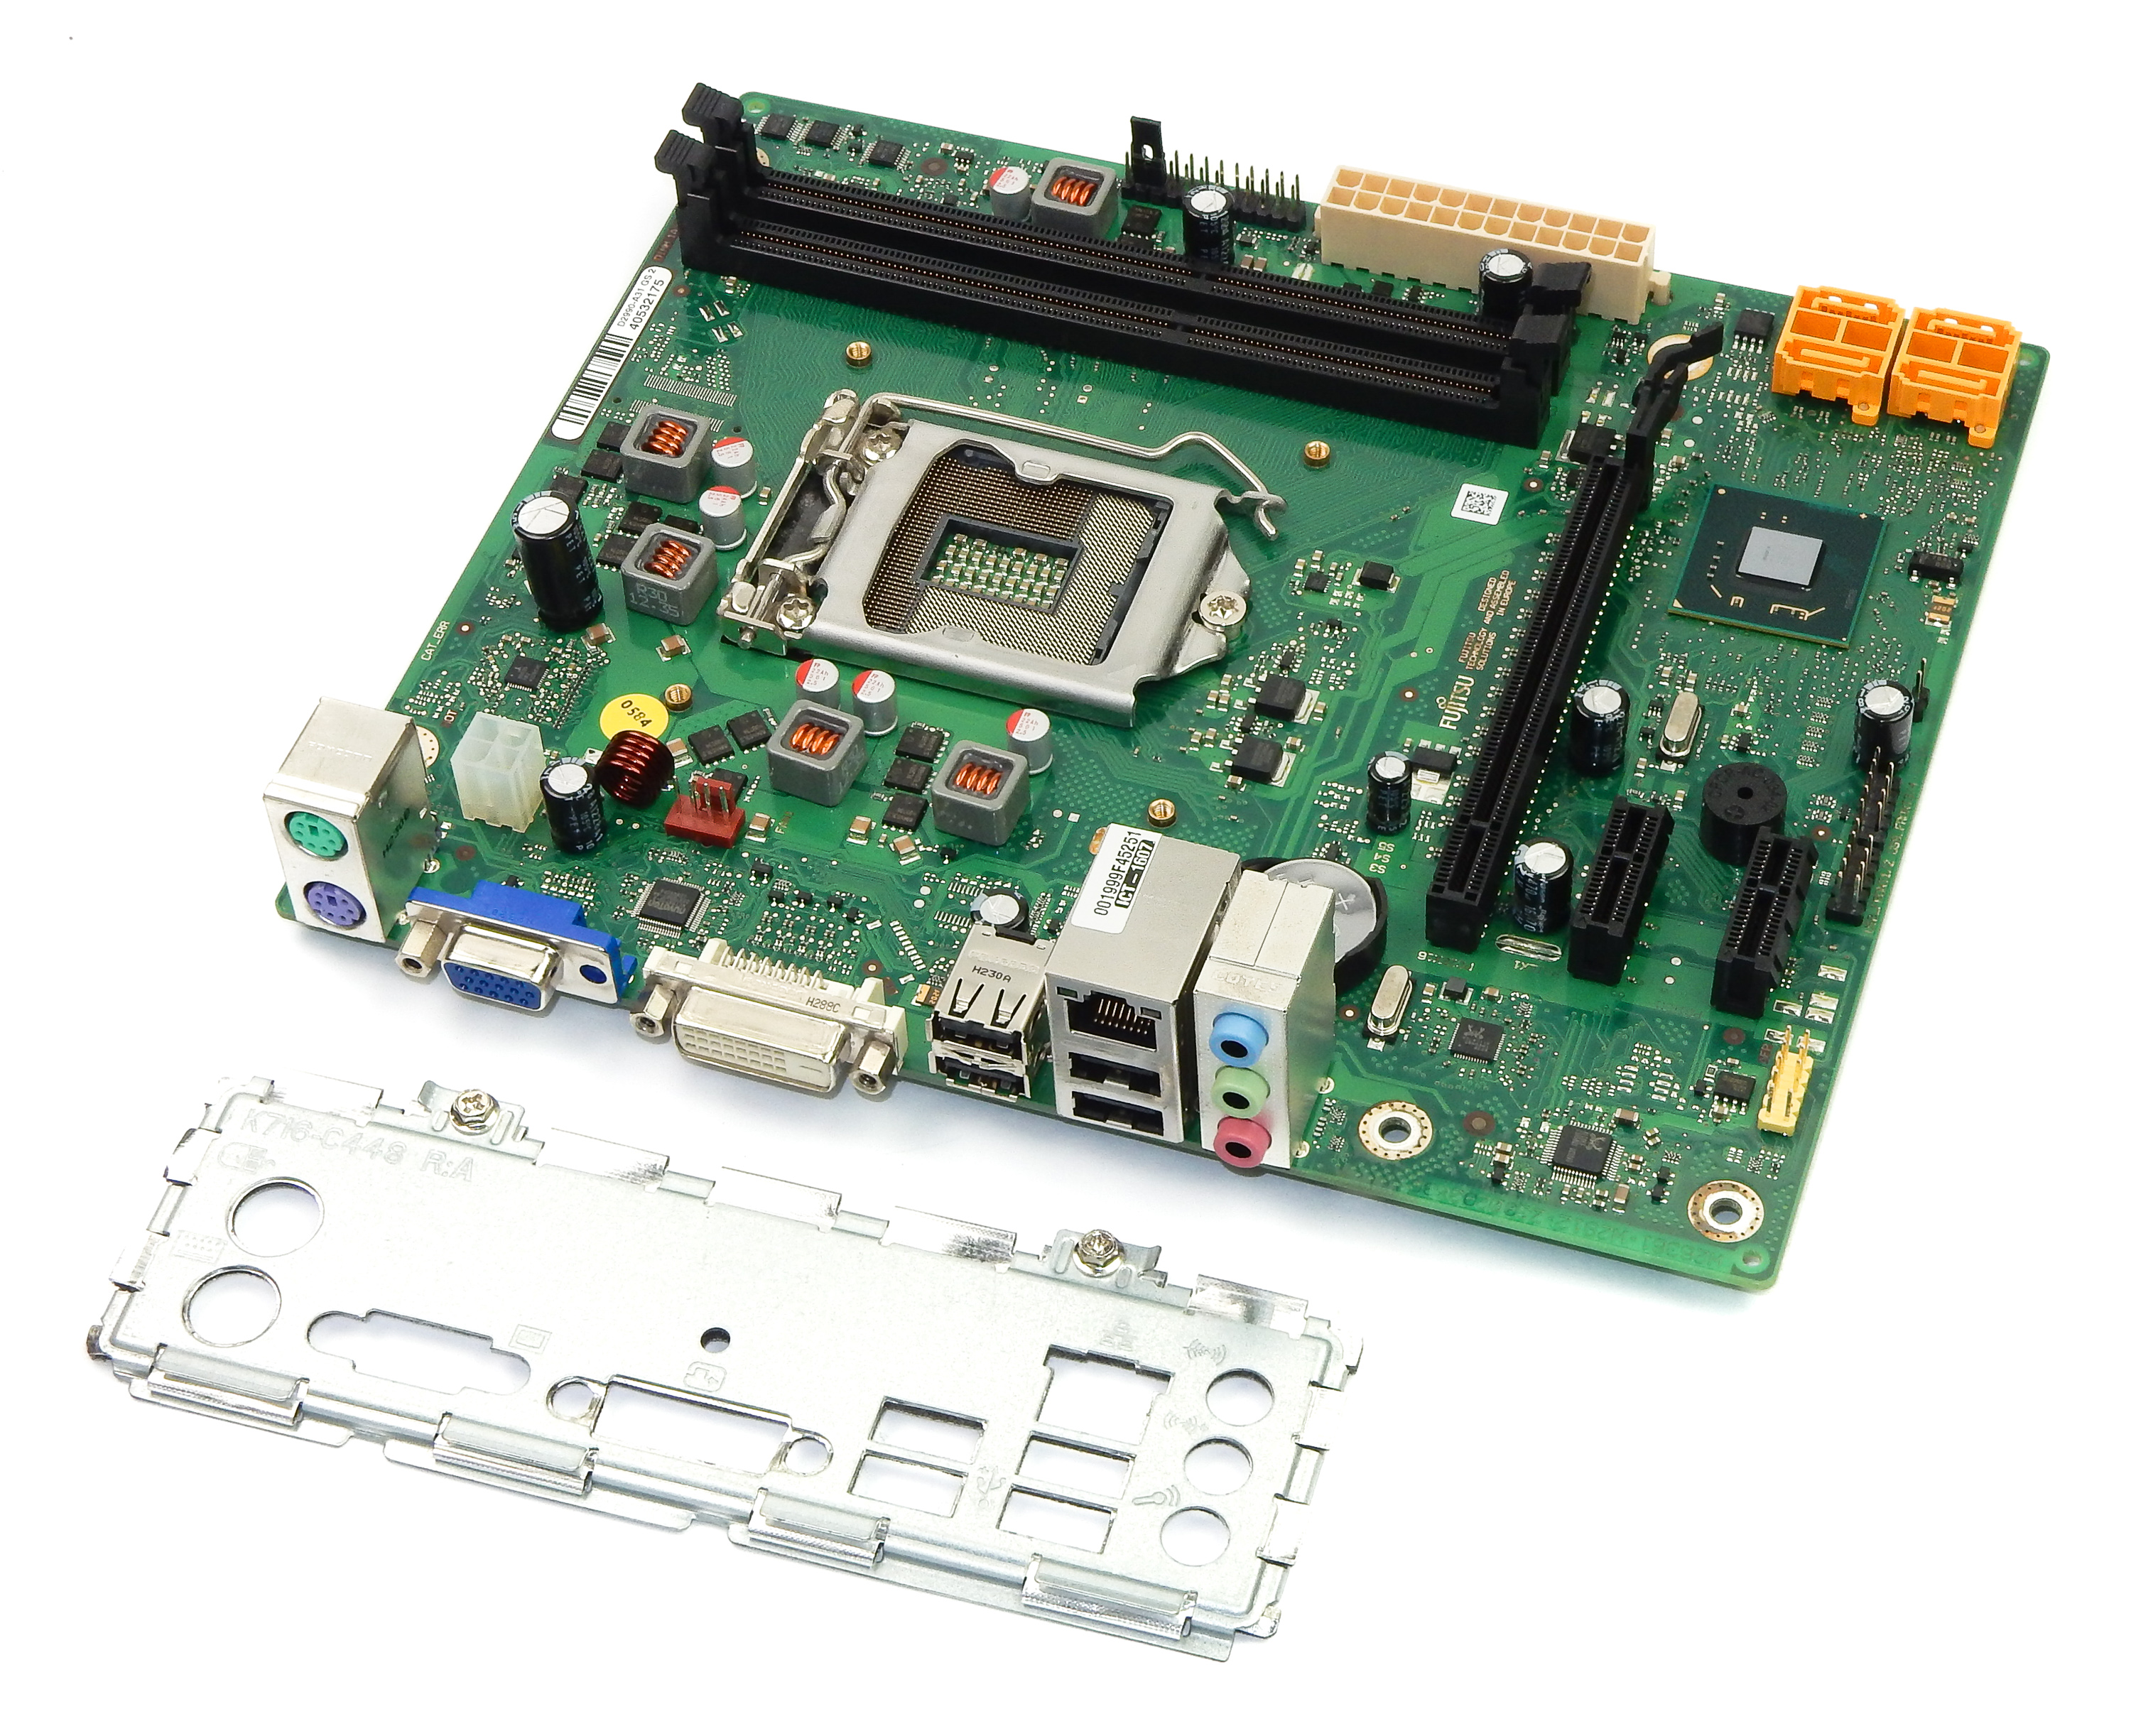 D2990-A31 GS 2 Fujitsu Intel Socket LGA1155 PC Motherboard